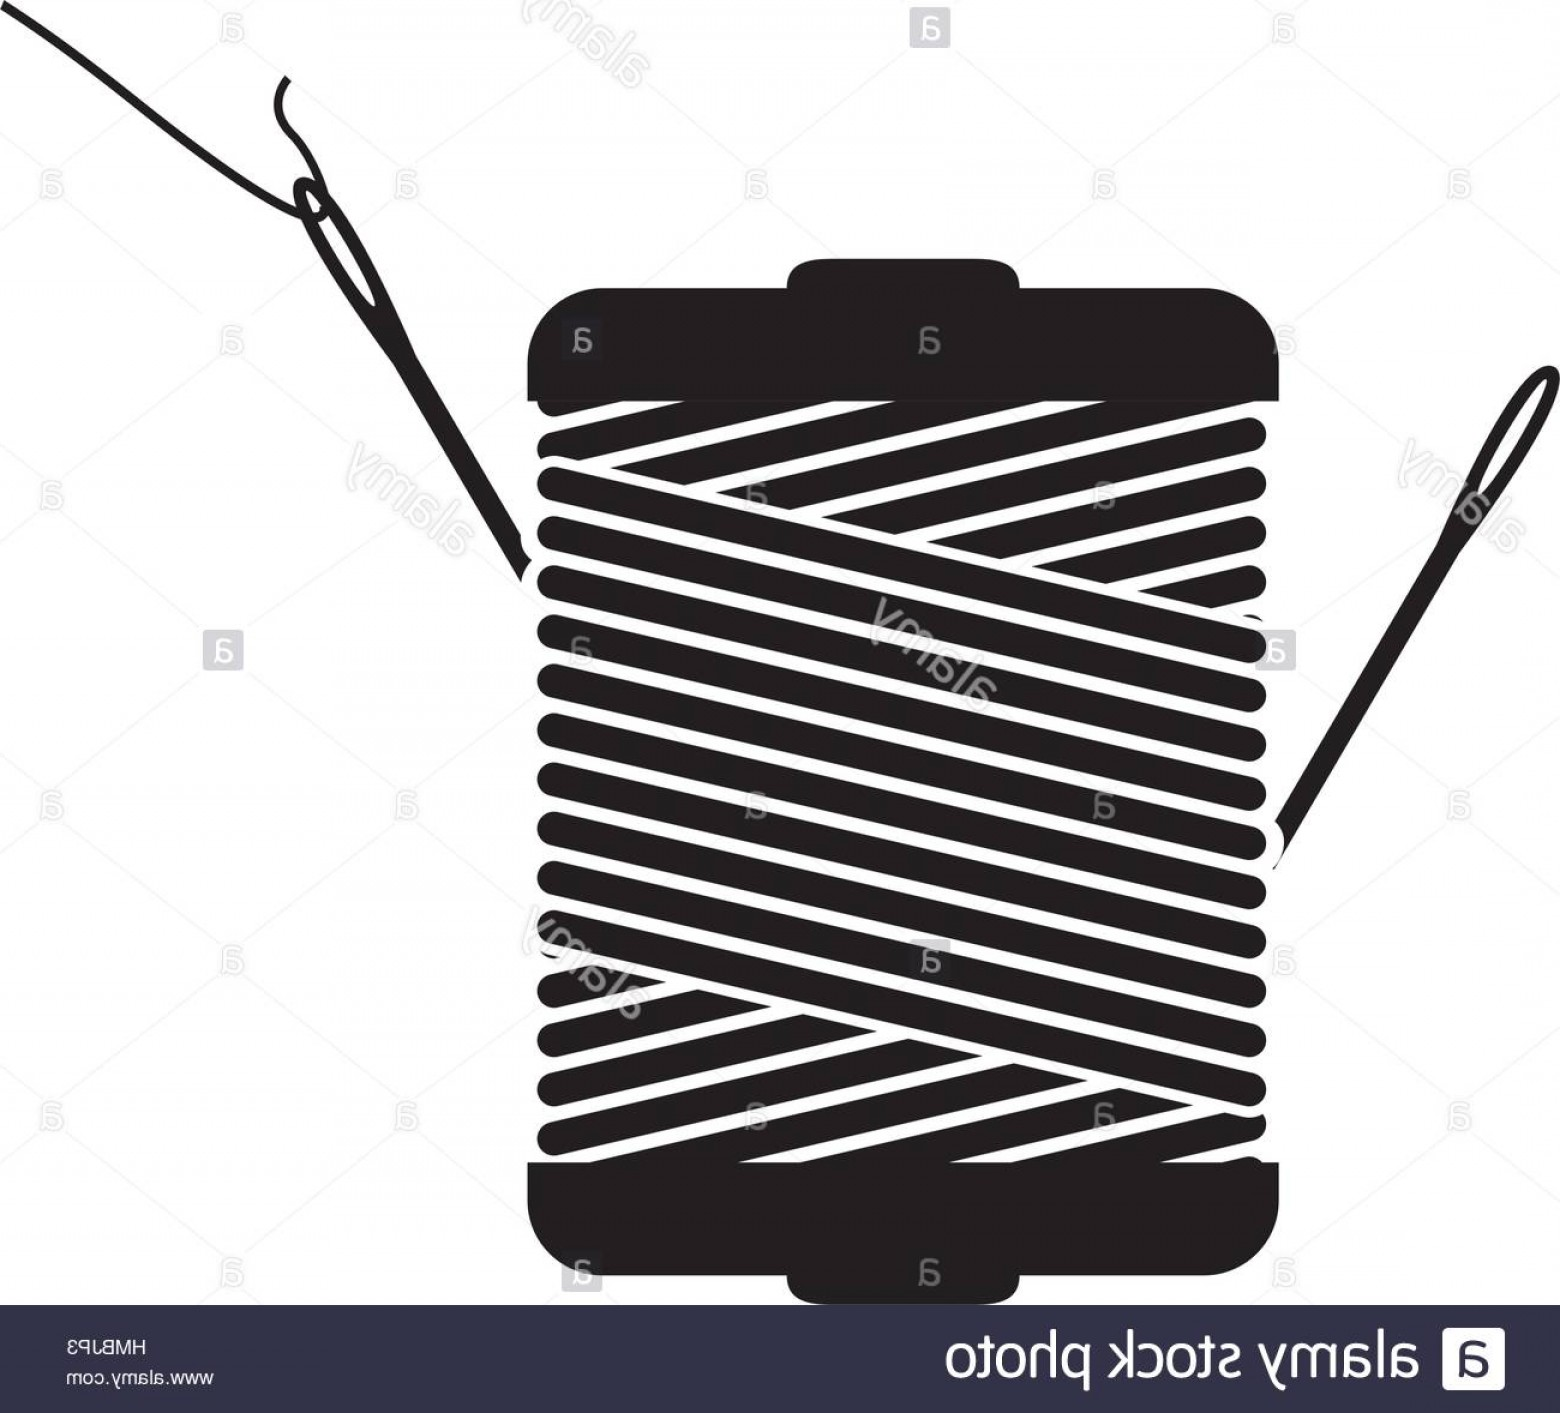 Sewing Spool Vector: Stock Photo Monochrome Silhouette With Thread Spool And Sewing Needle Vector Illustration